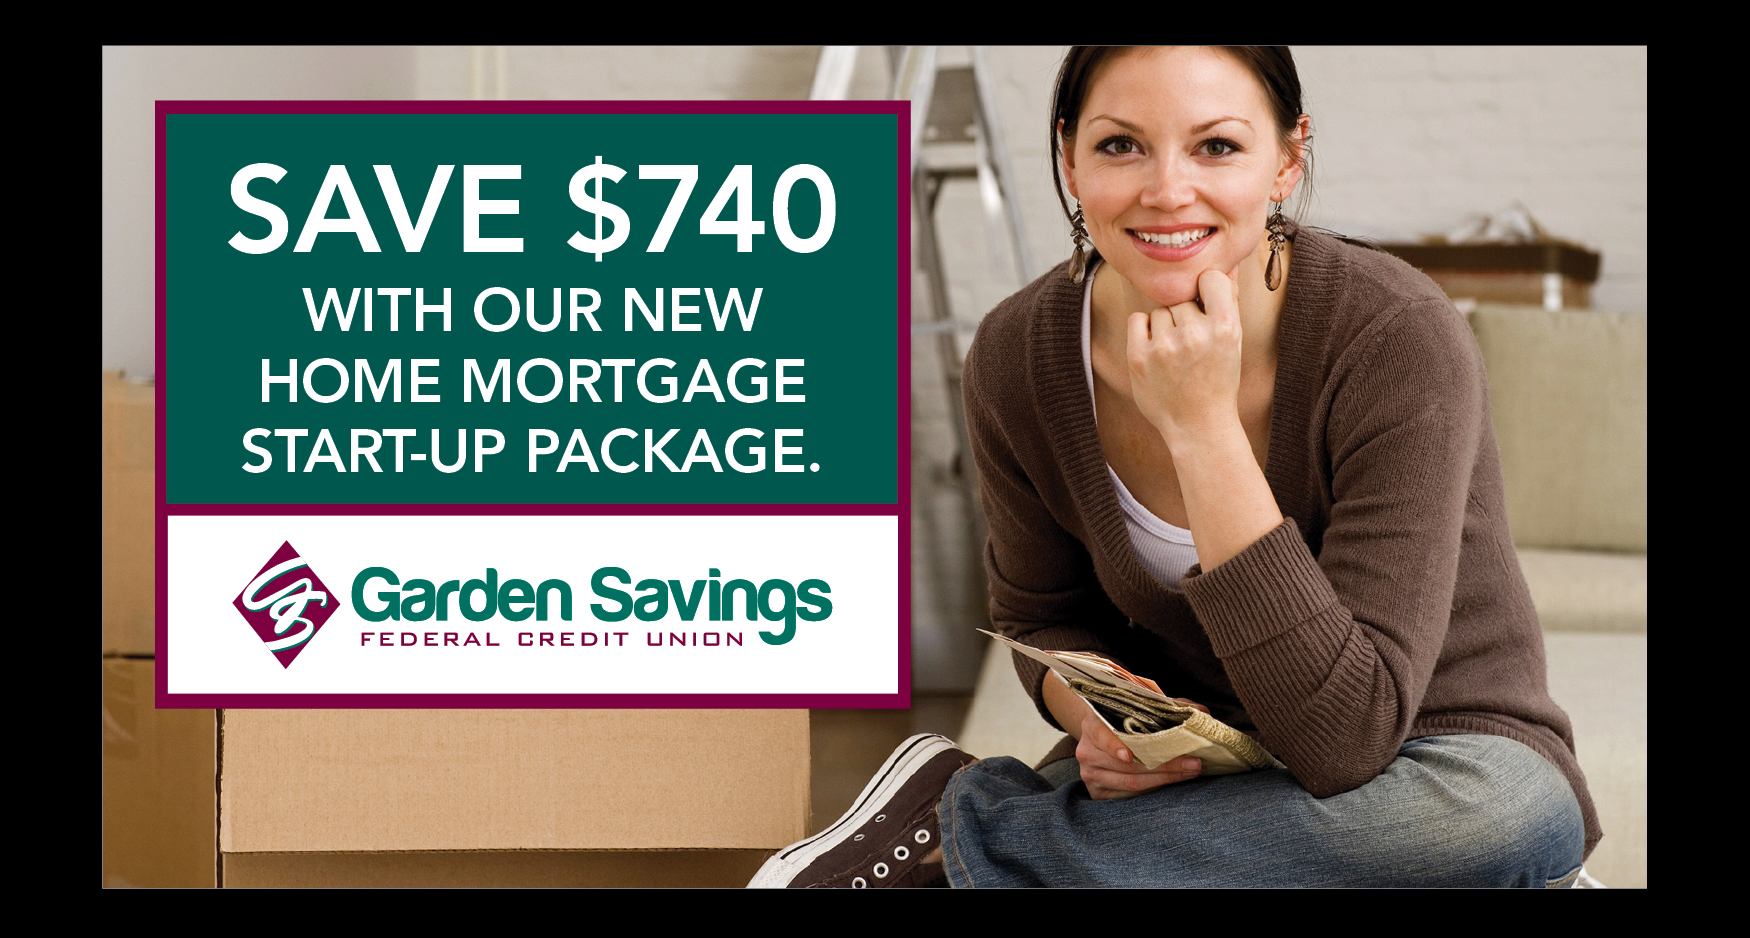 GSFCU Card 2 - GARDEN SAVINGS - MORTGAGE START-UP CAMPAIGN